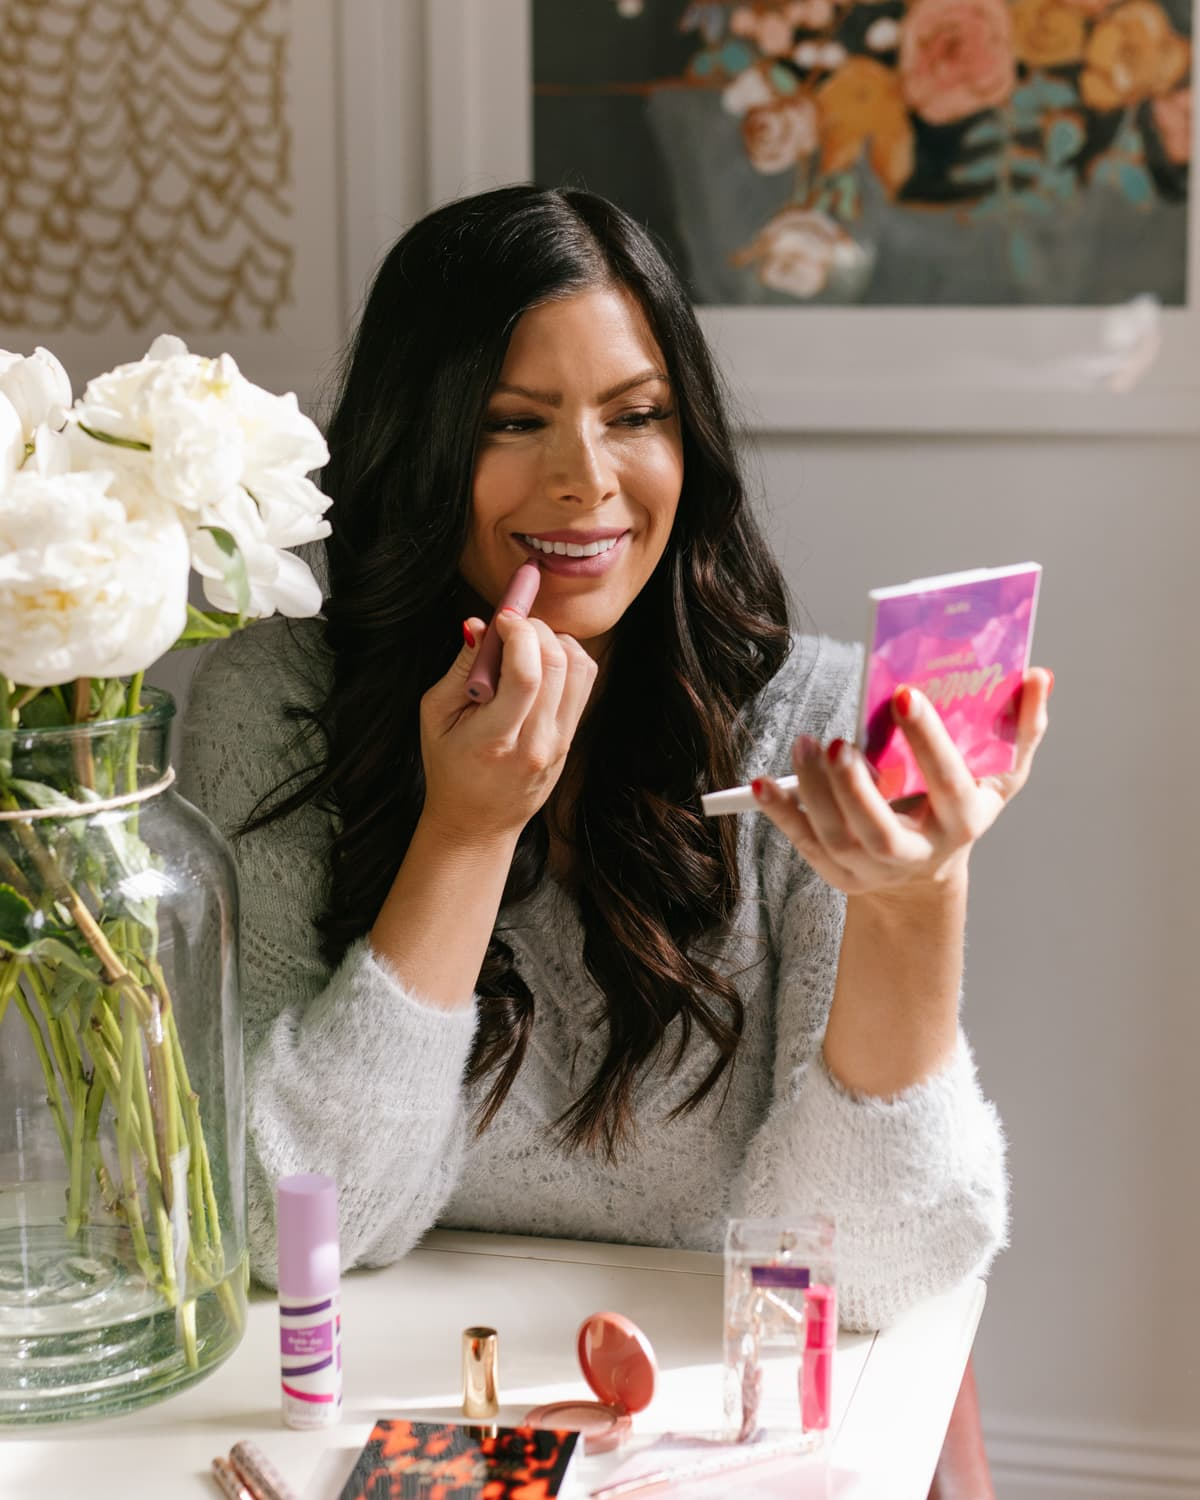 tarte makeup products gift ideas